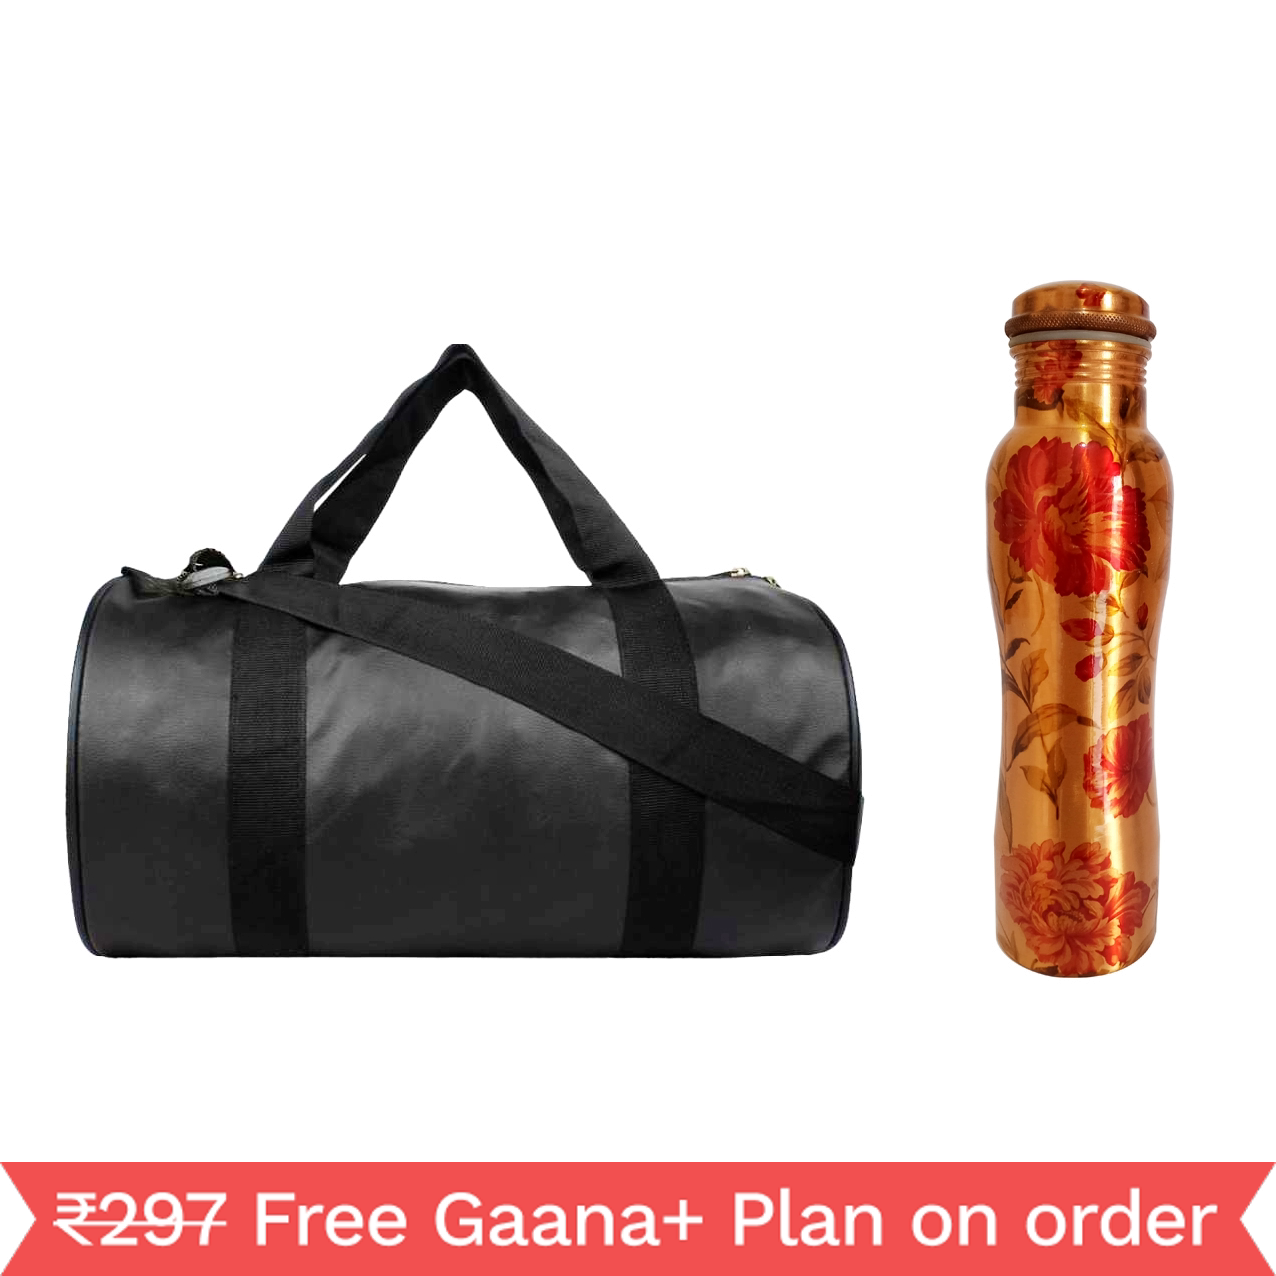 1 Copper 1000ml bottle & 1 Gym Bag - Curved Leaf   1000 GymBag Black